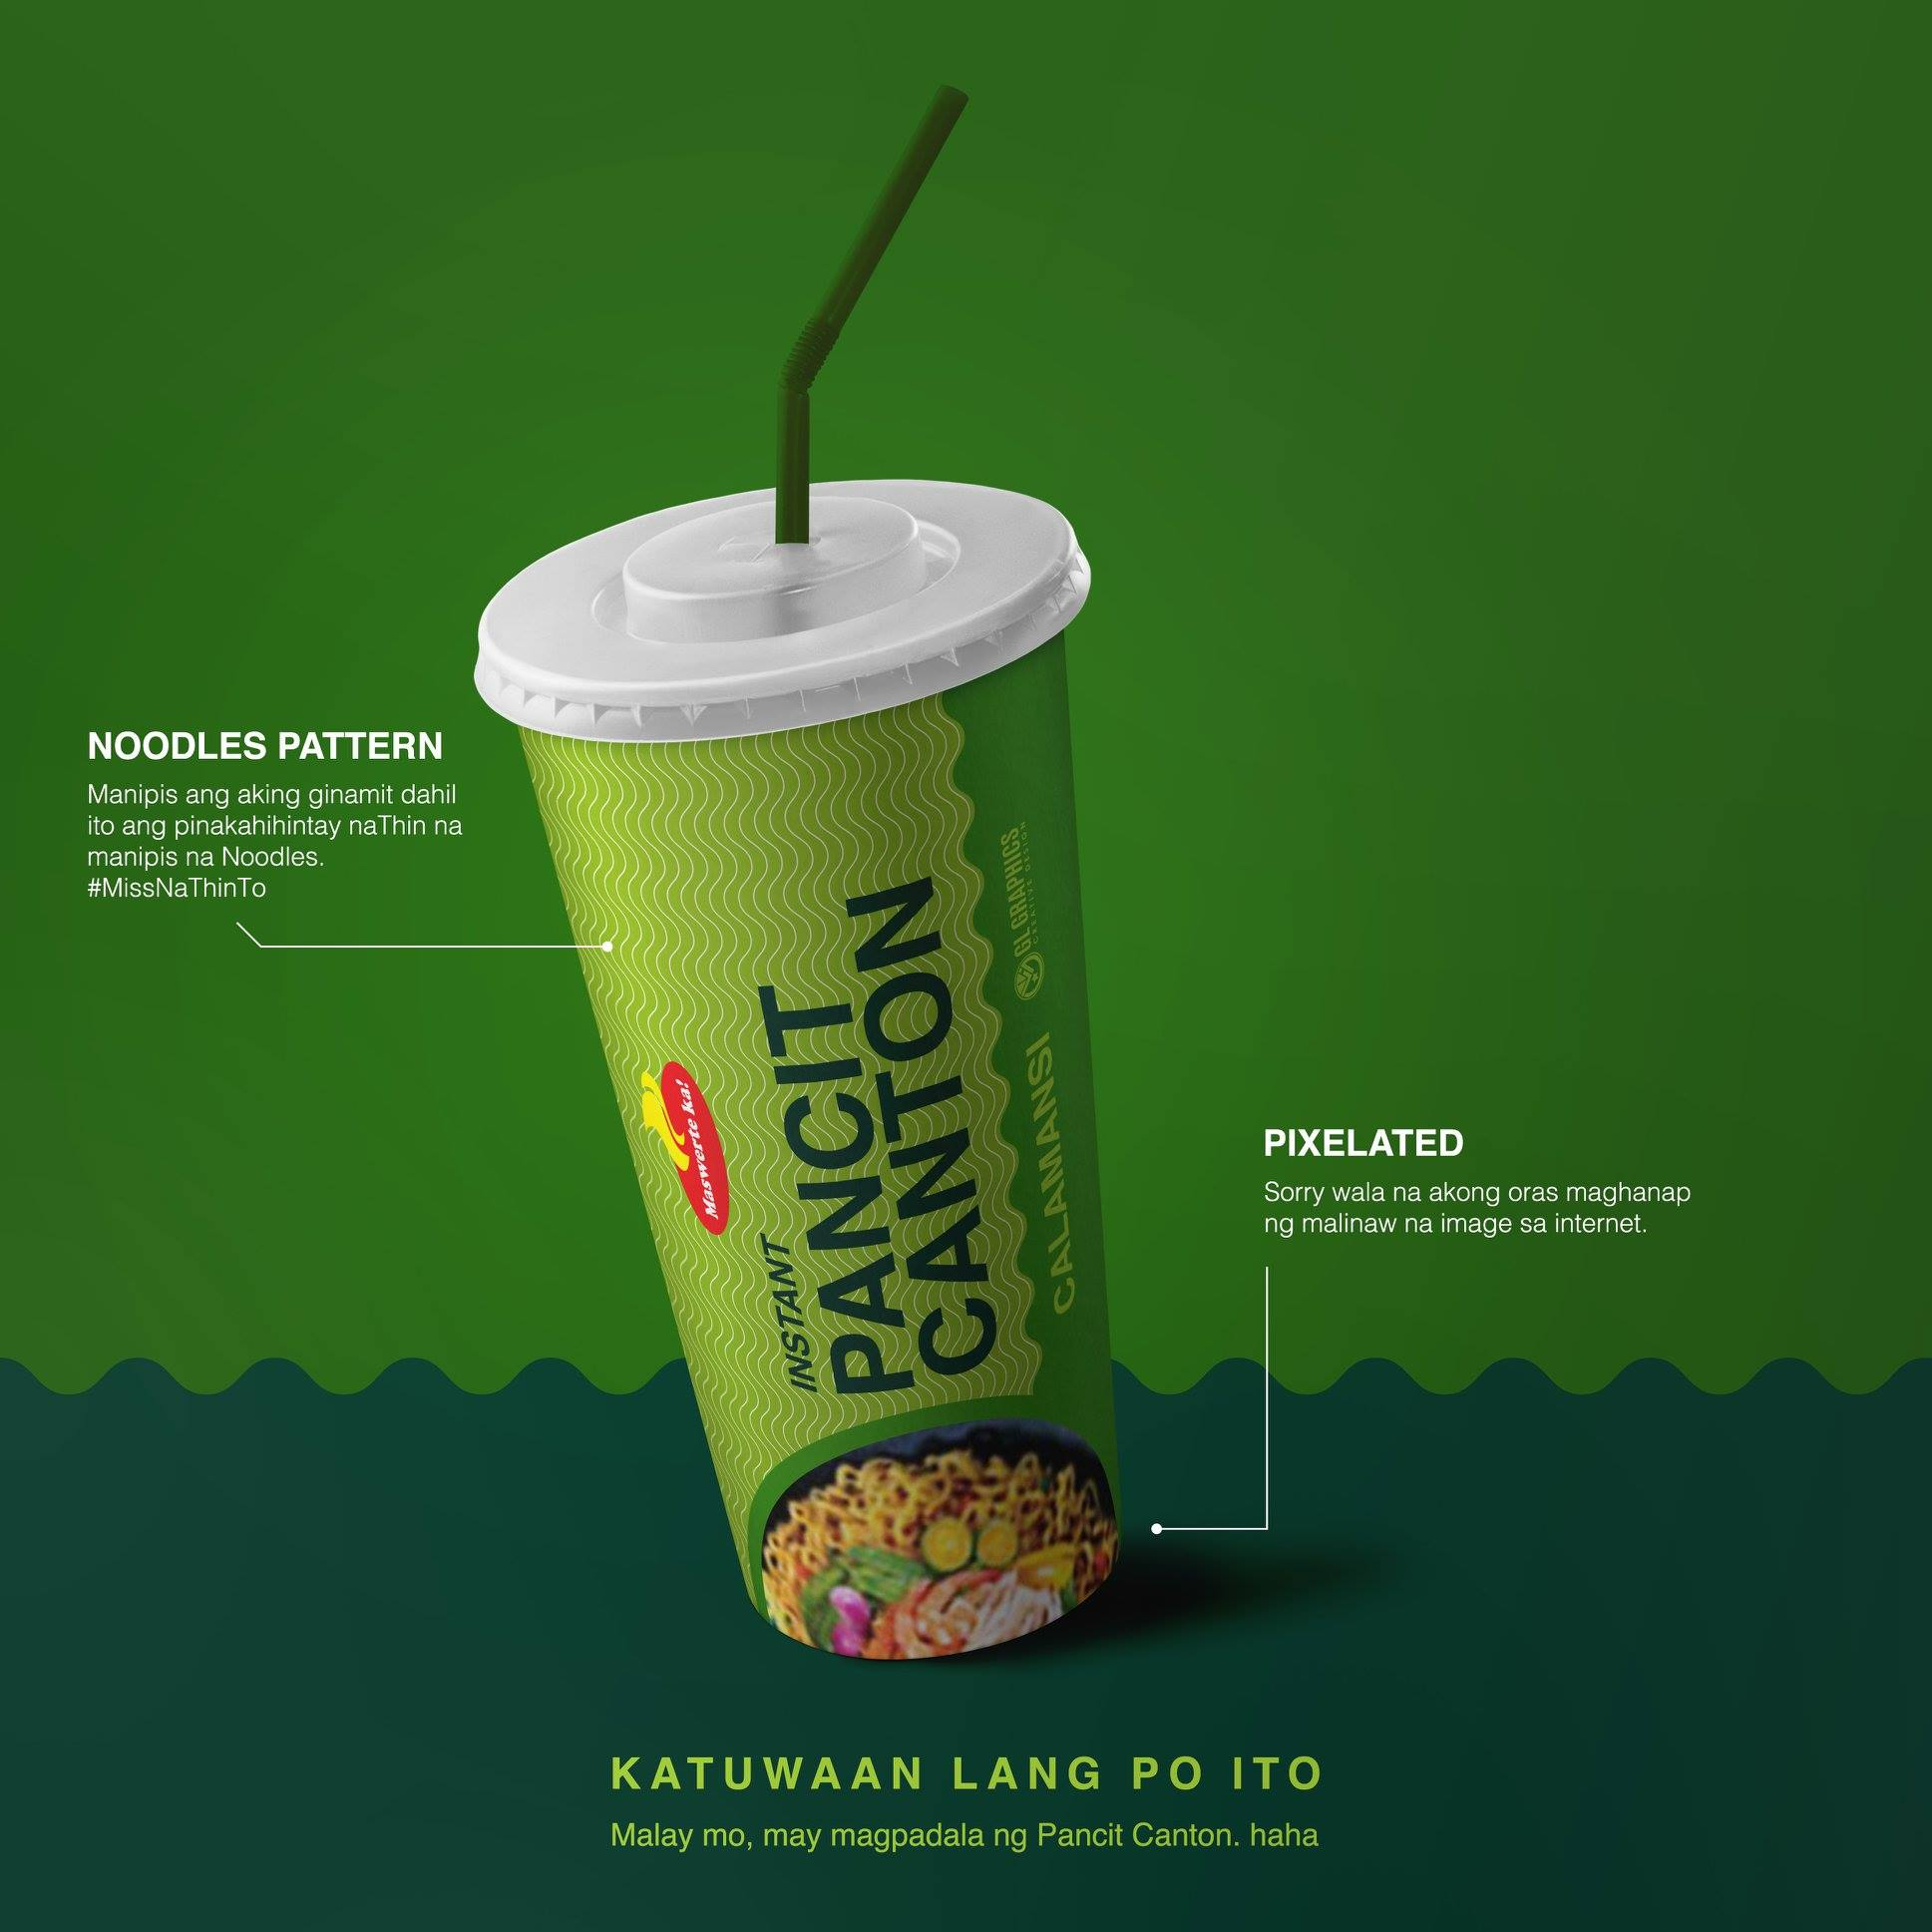 Pancit Canton packaging designs